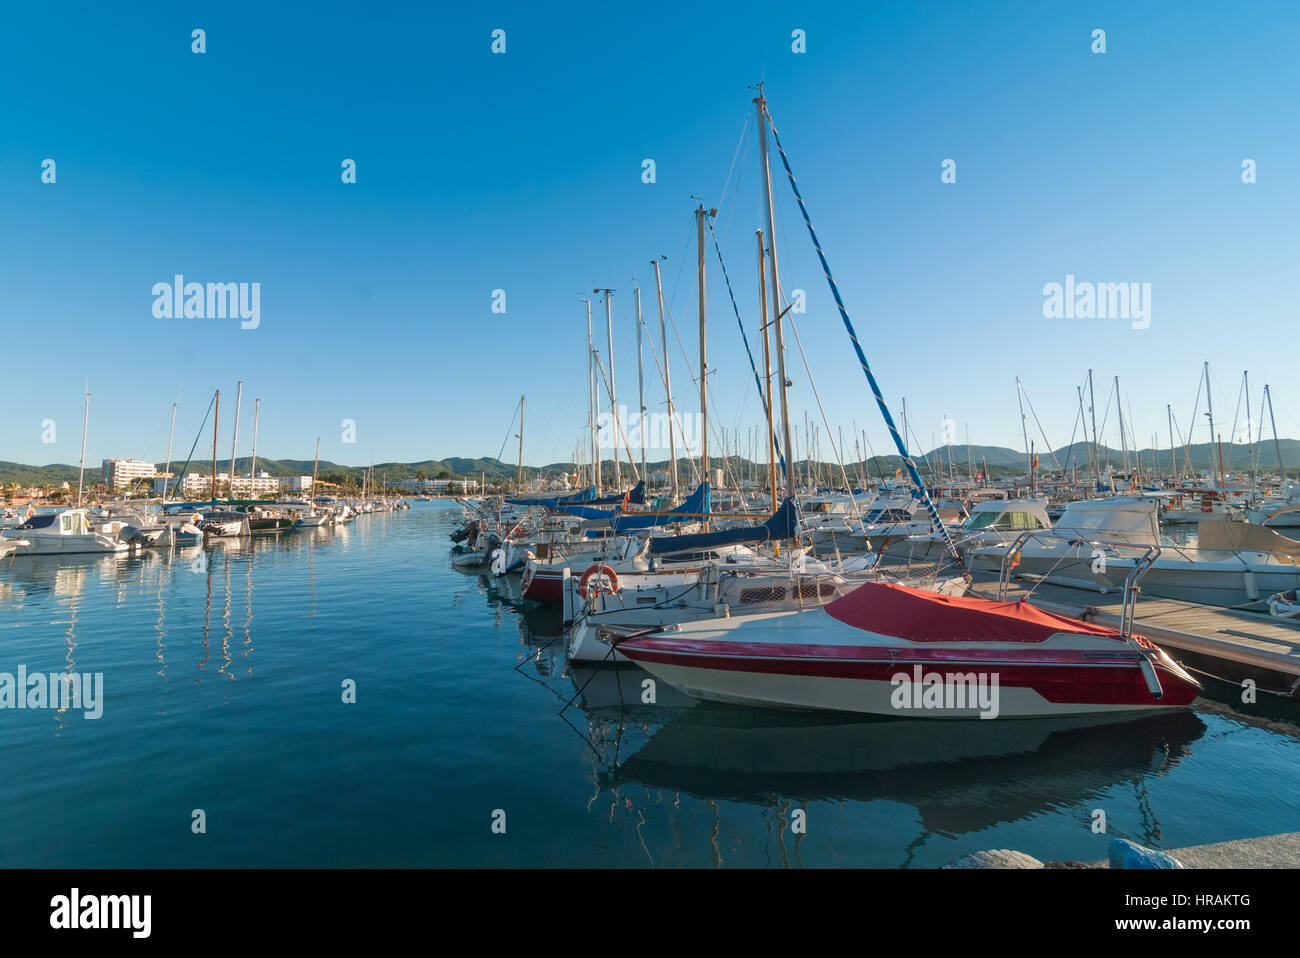 Ibiza sunshine in Late afternoon in St Antoni de Portmany, Ibiza, Spain.  Row of idle watercraft, sailboats & - Stock Image